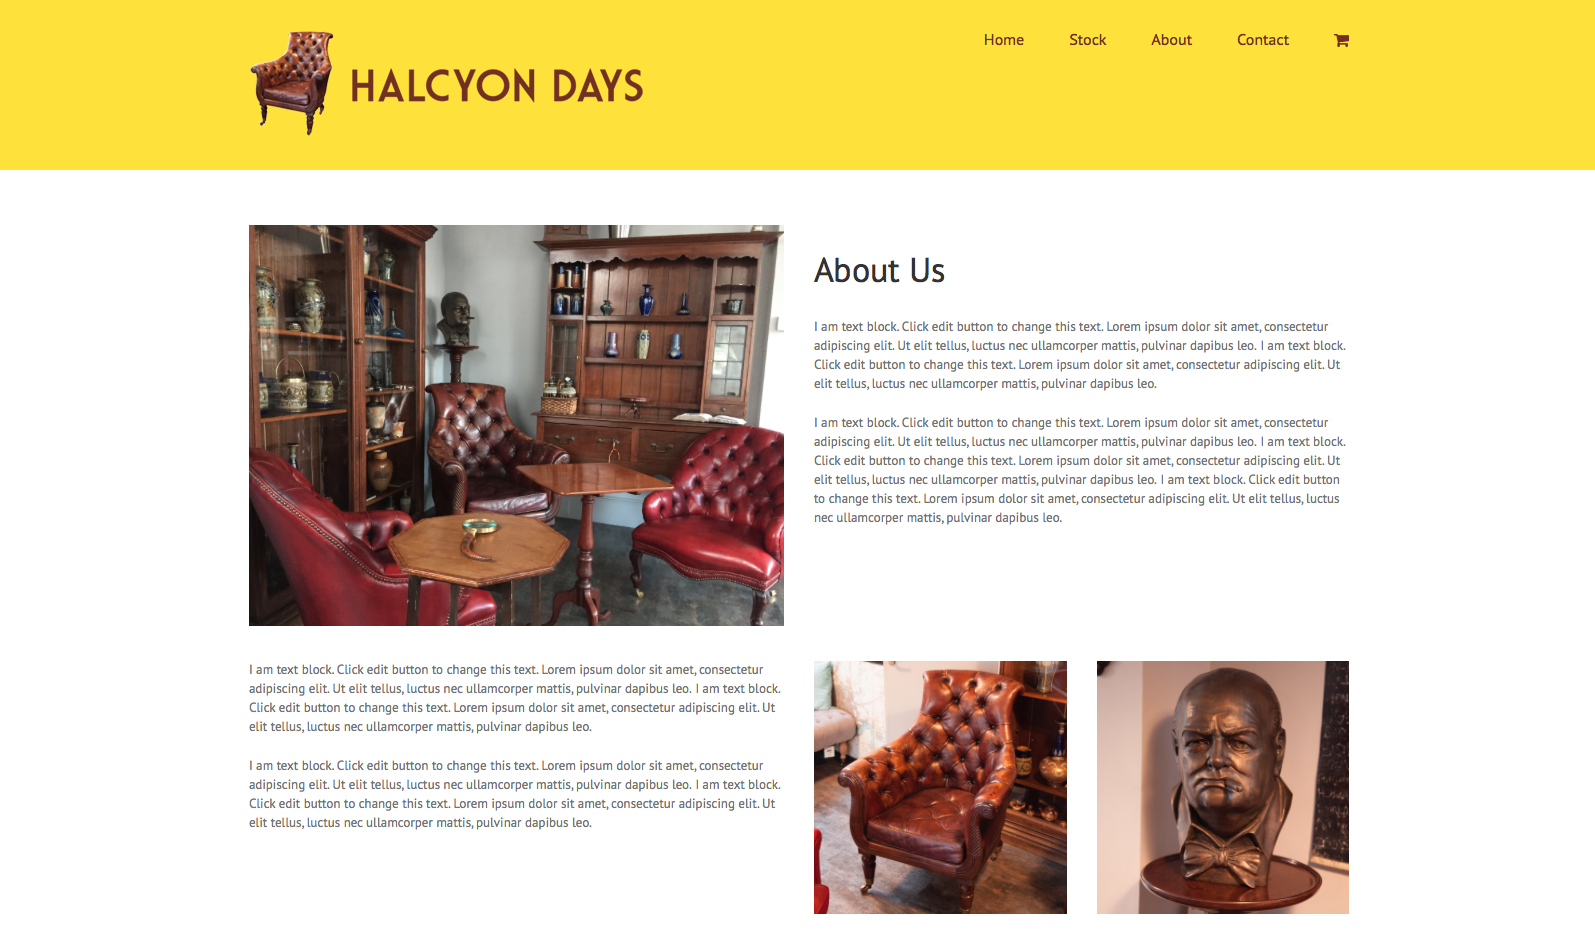 About us page from Halcyon days website design